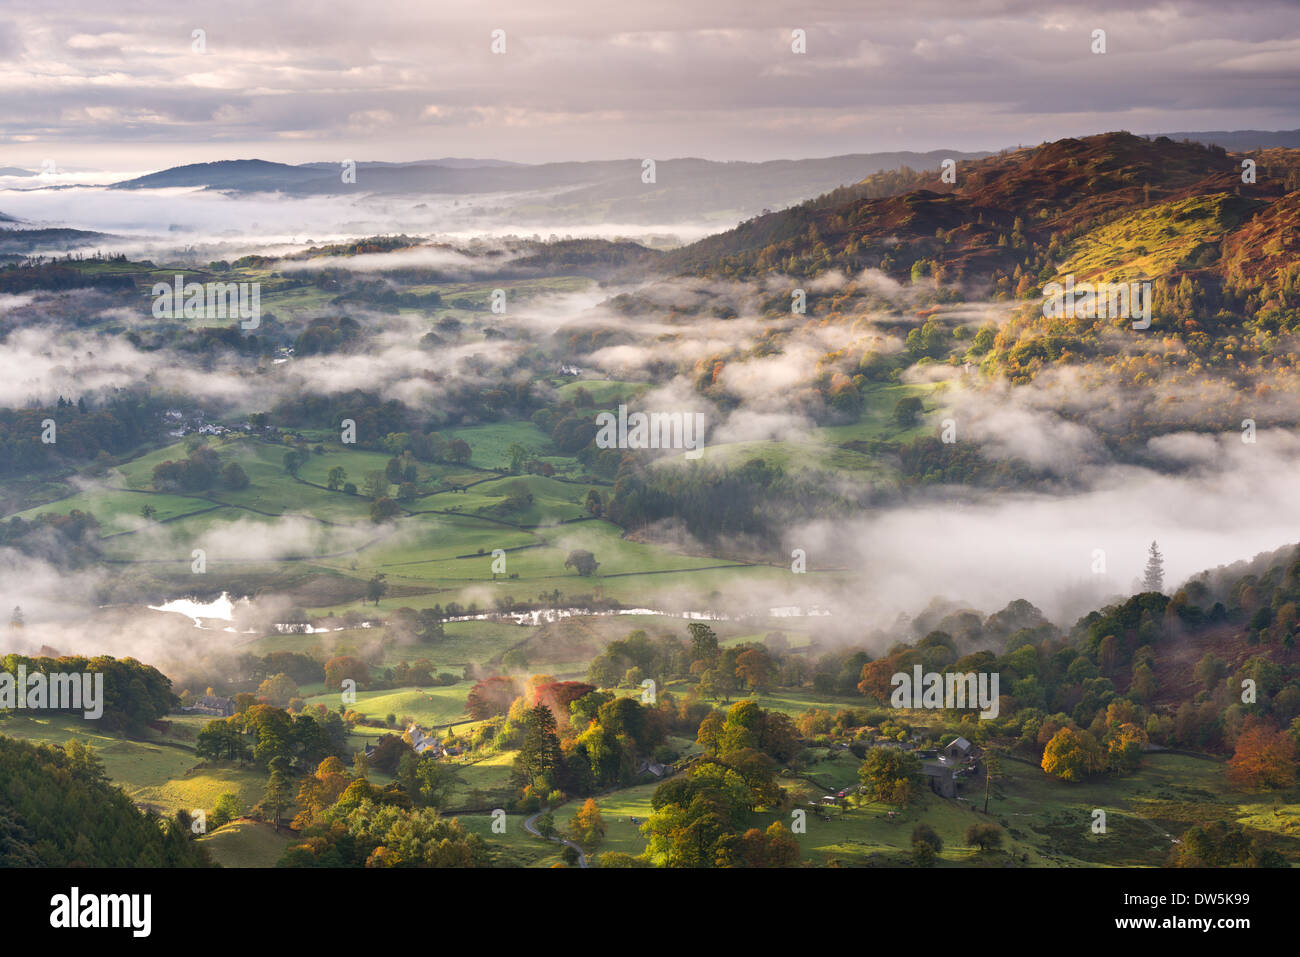 Patches of morning mist float above countryside near the River Brathay, Lake District National Park, Cumbria, England. - Stock Image